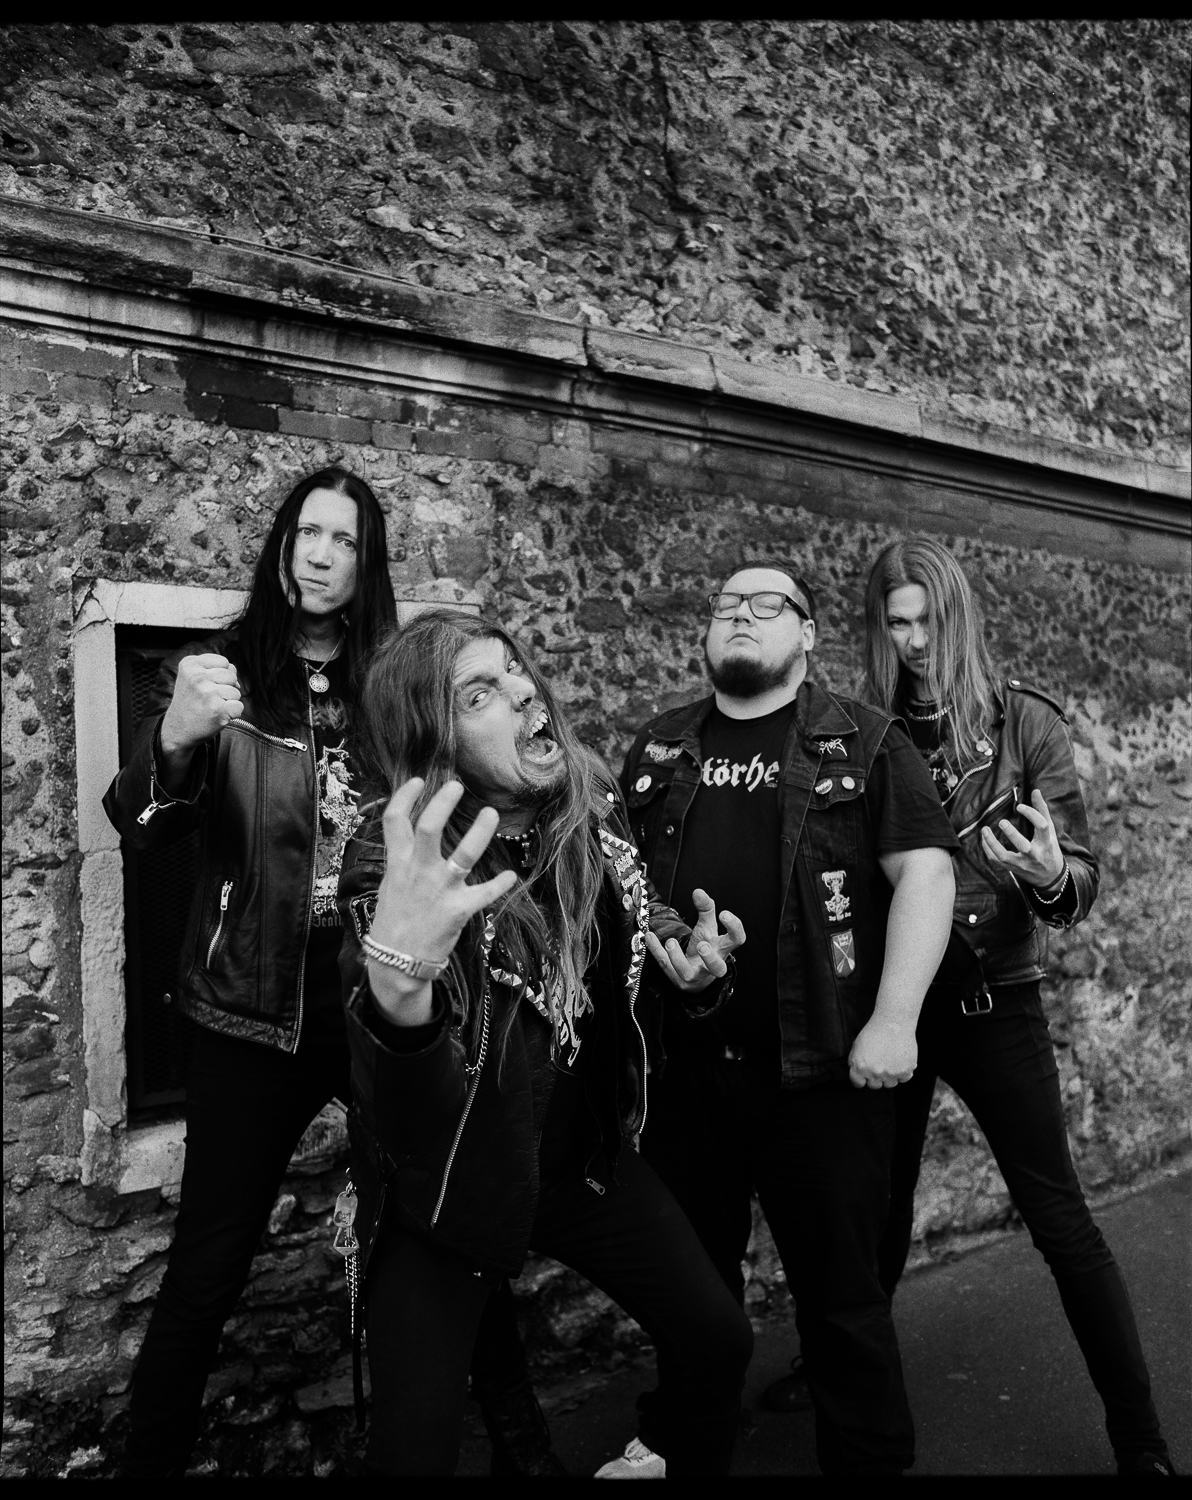 interment band death metal sweden